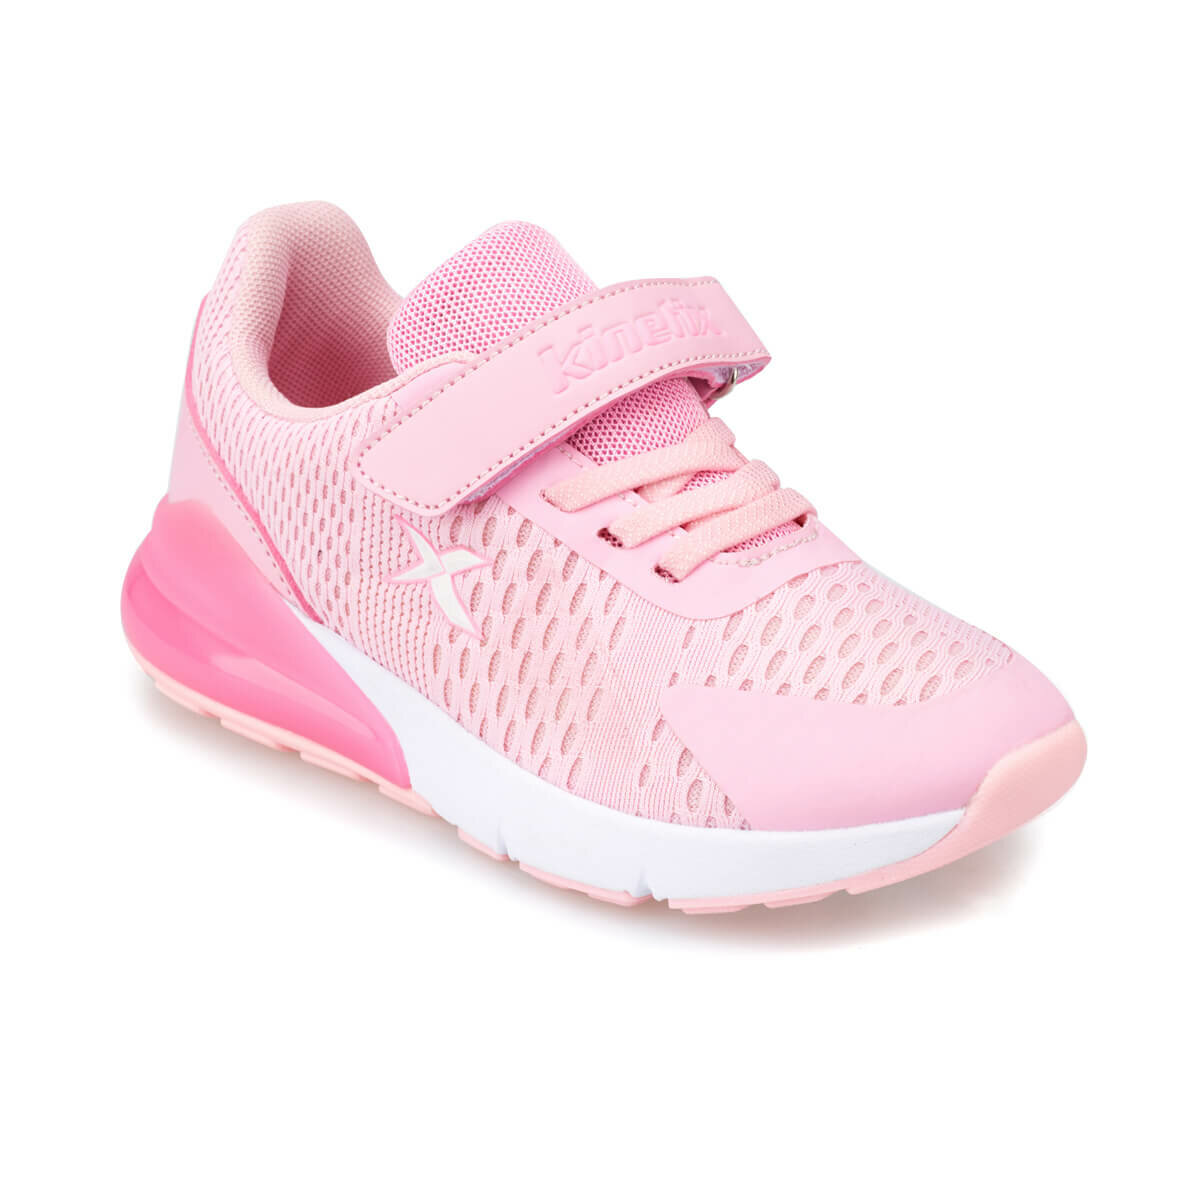 FLO FUZZY Pink Female Child Running Shoes KINETIX